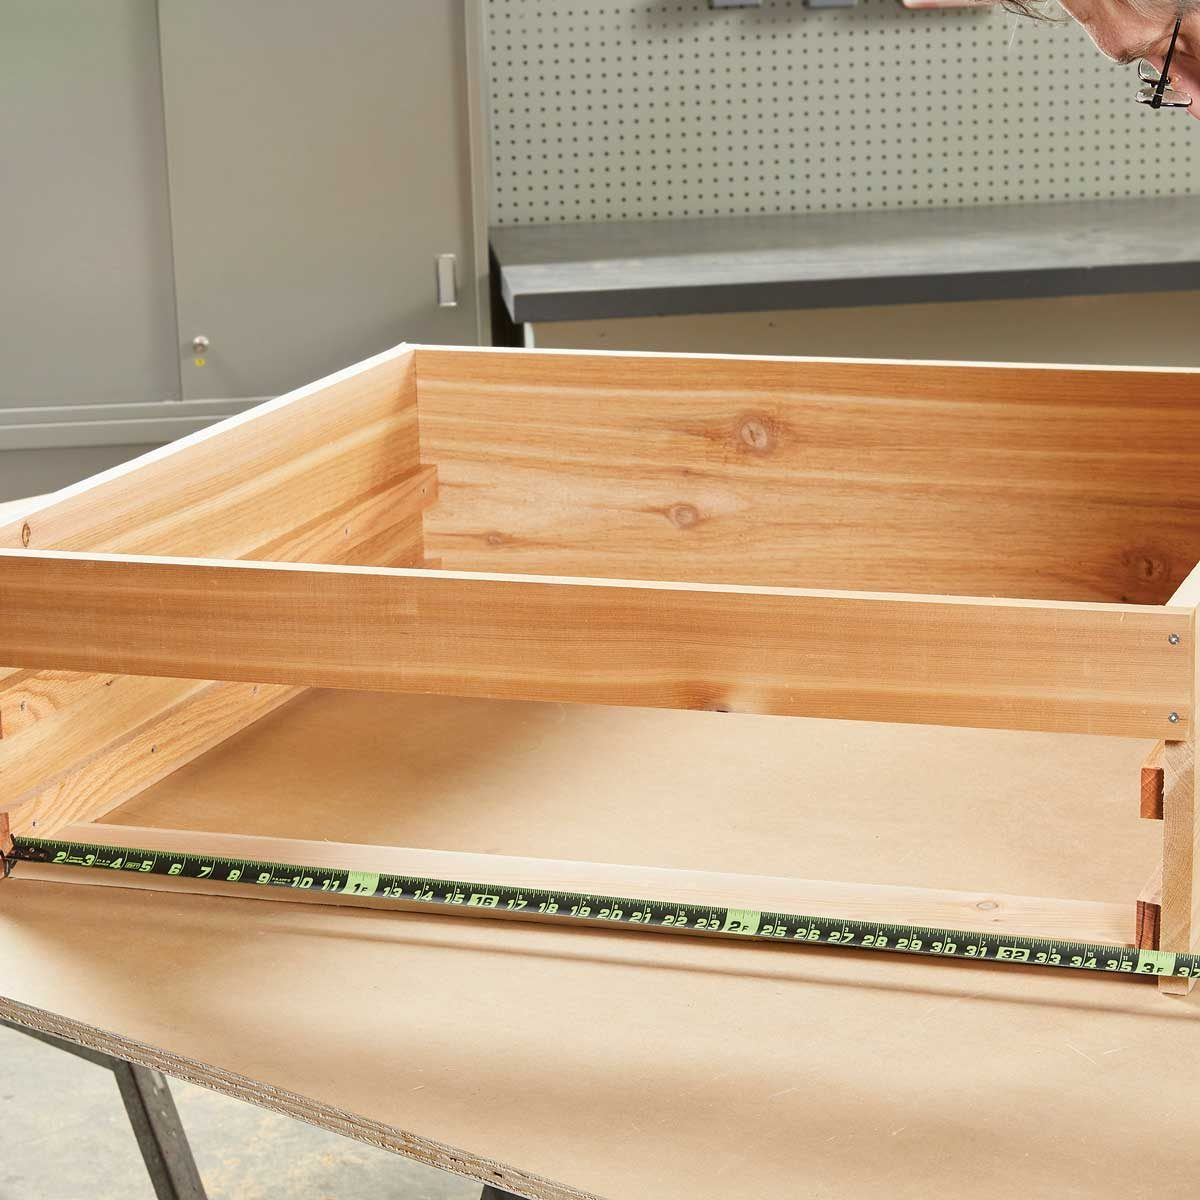 Measure for the drawer